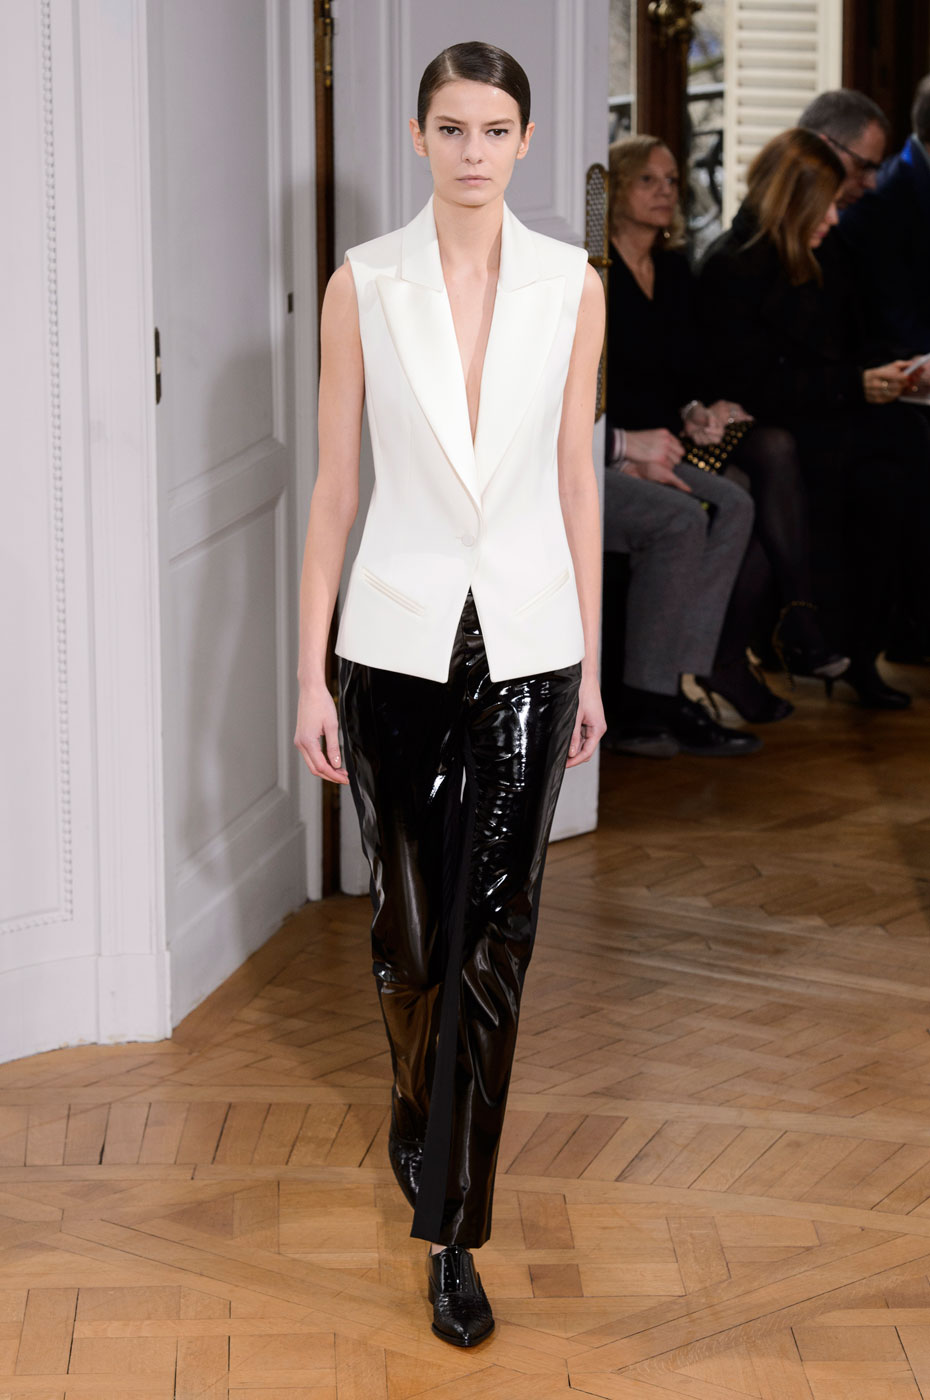 Bouchra-Jarrar-fashion-runway-show-haute-couture-paris-spring-summer-2015-the-impression-41